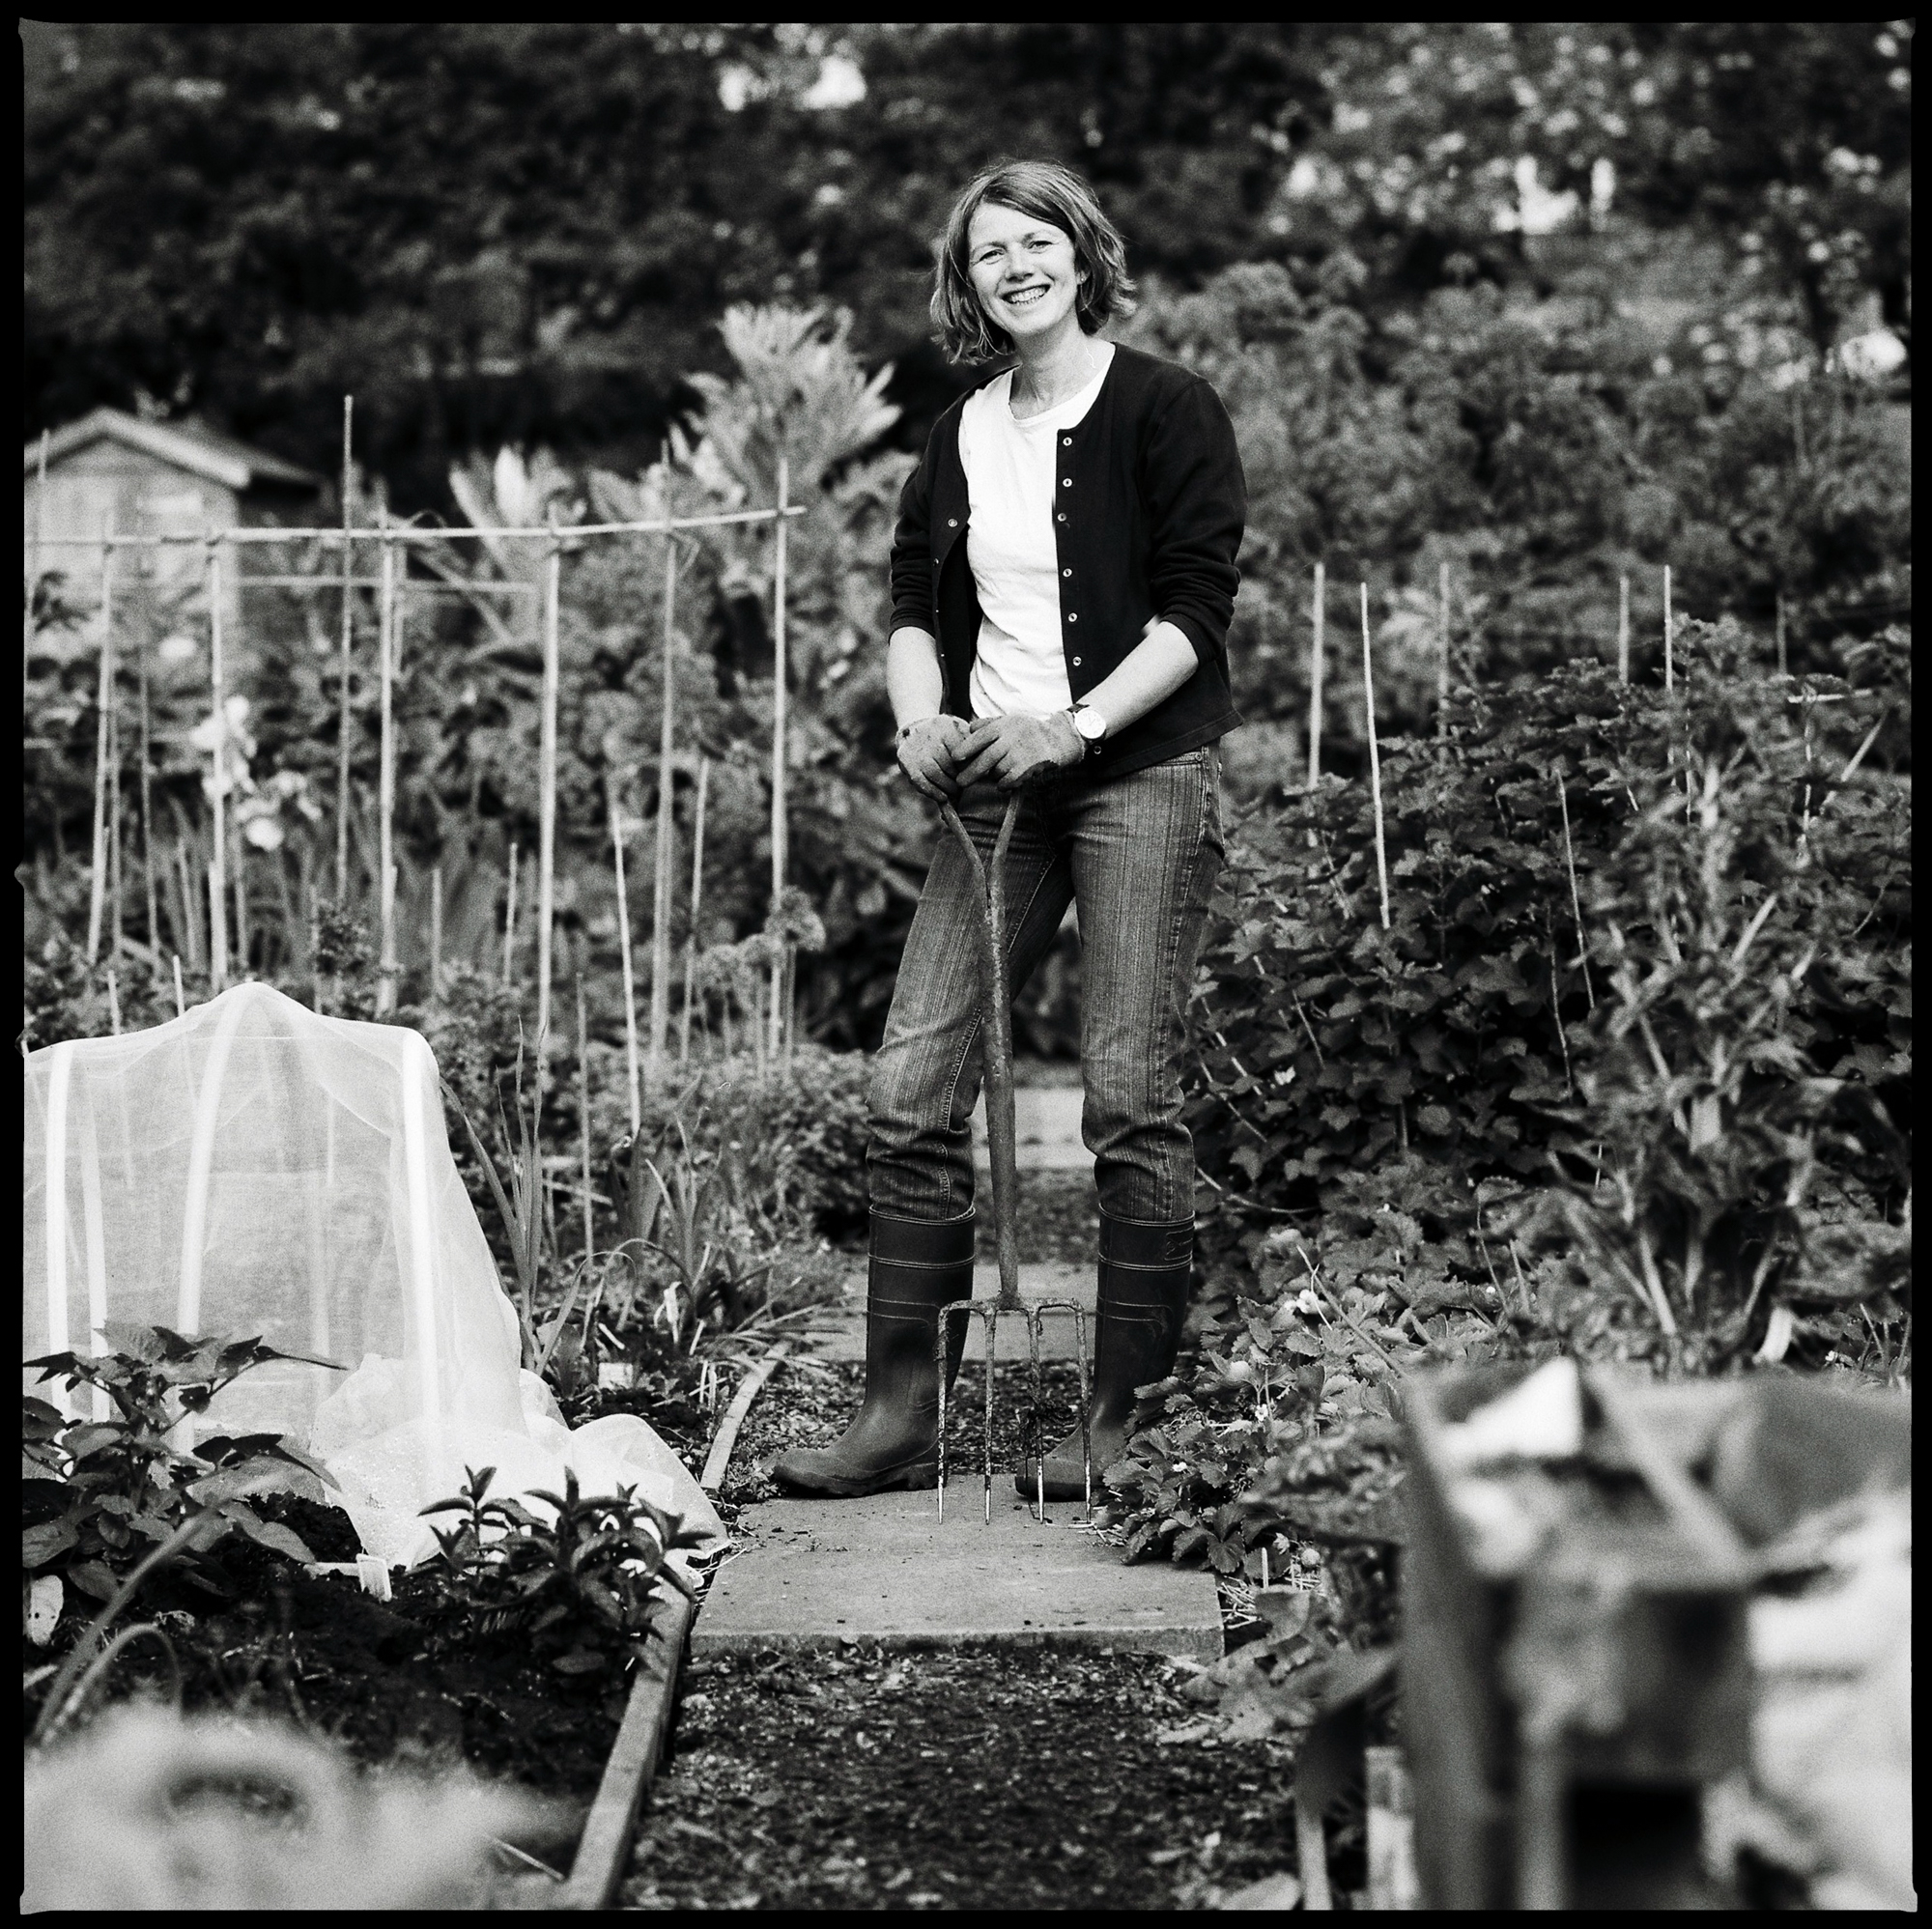 Lesley Benton, Allotment Holder